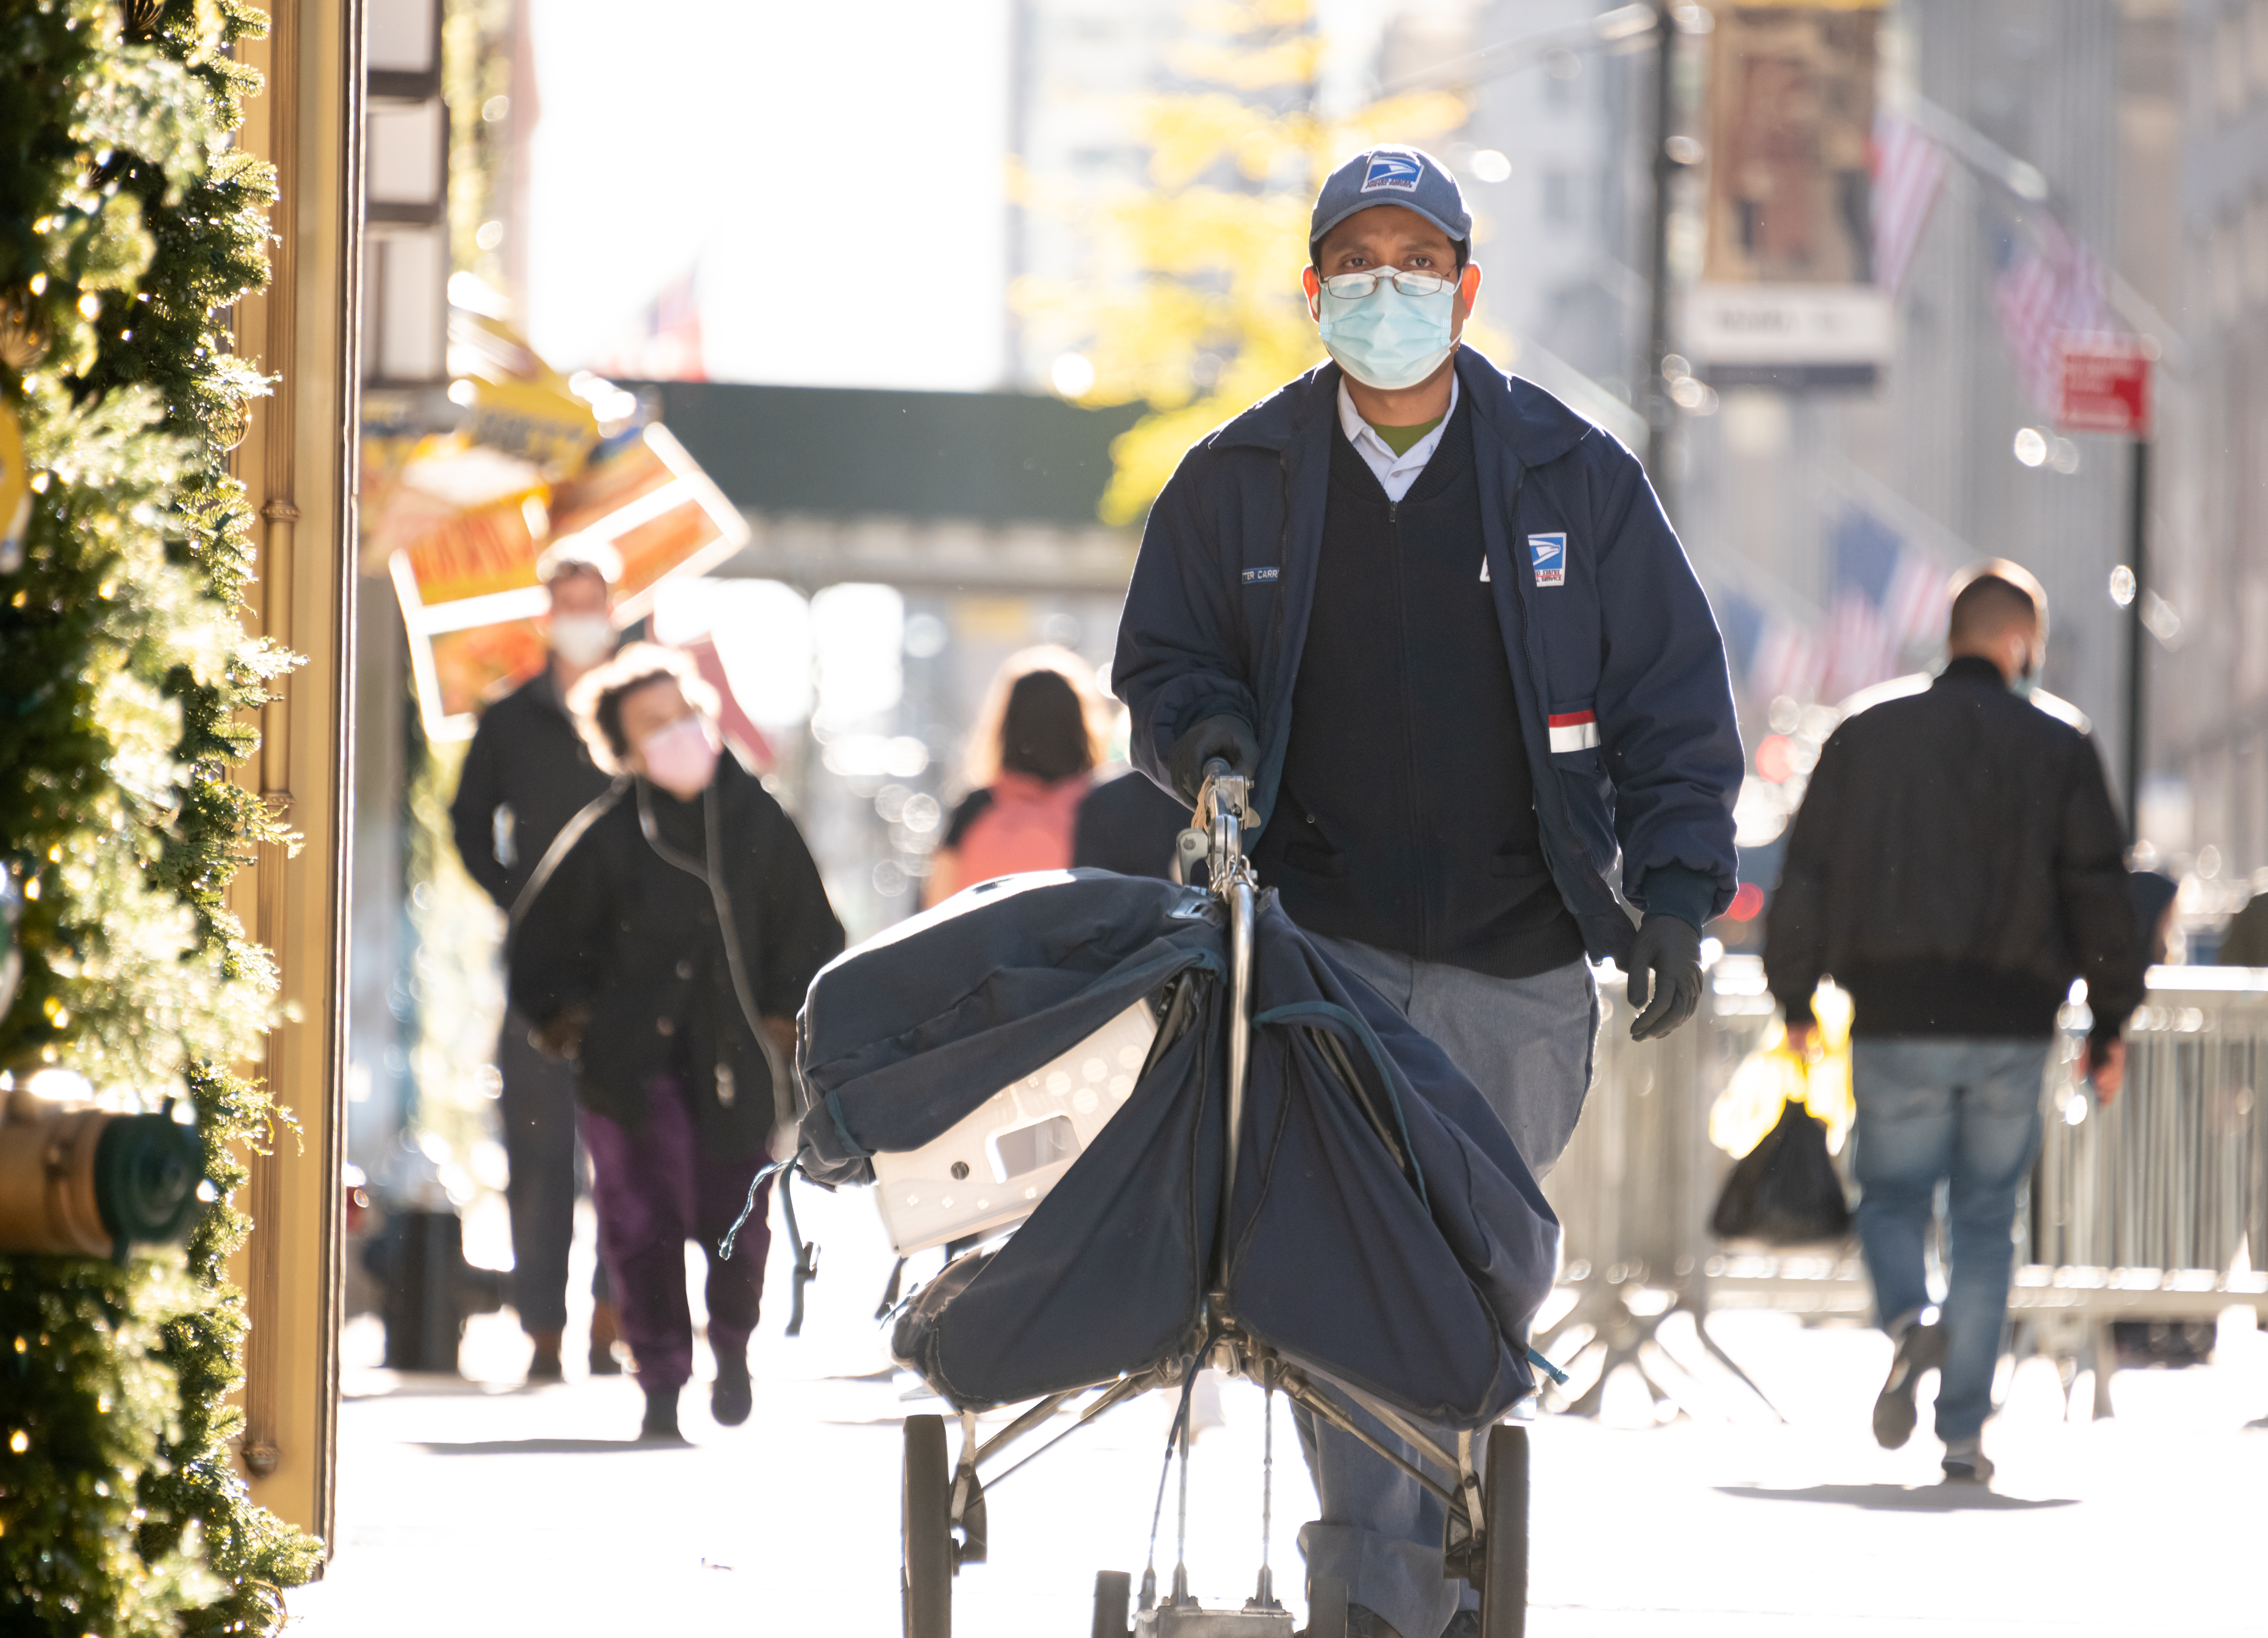 A USPS worker walks down the street with rolling parcel bags, wearing a mask.